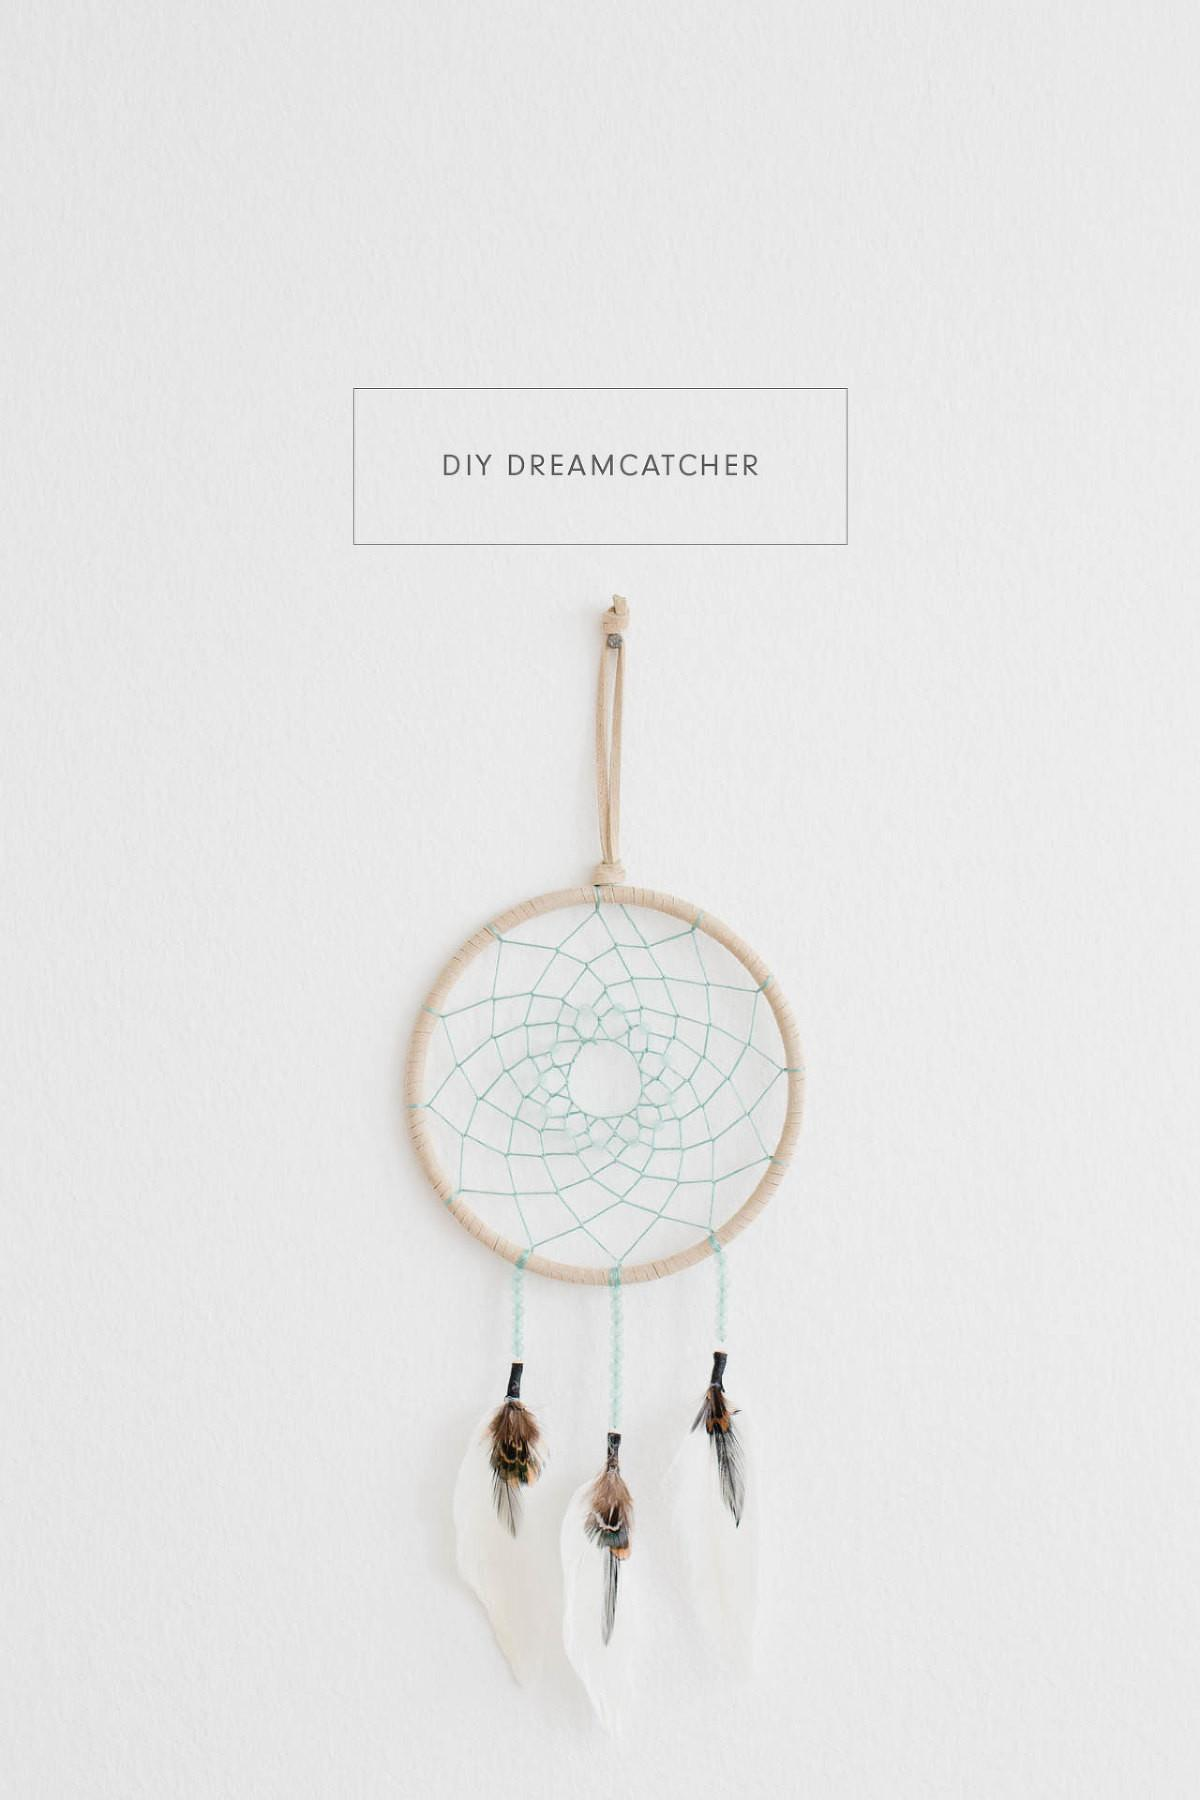 Make Simple Diy Dreamcatcher Kaley Ann